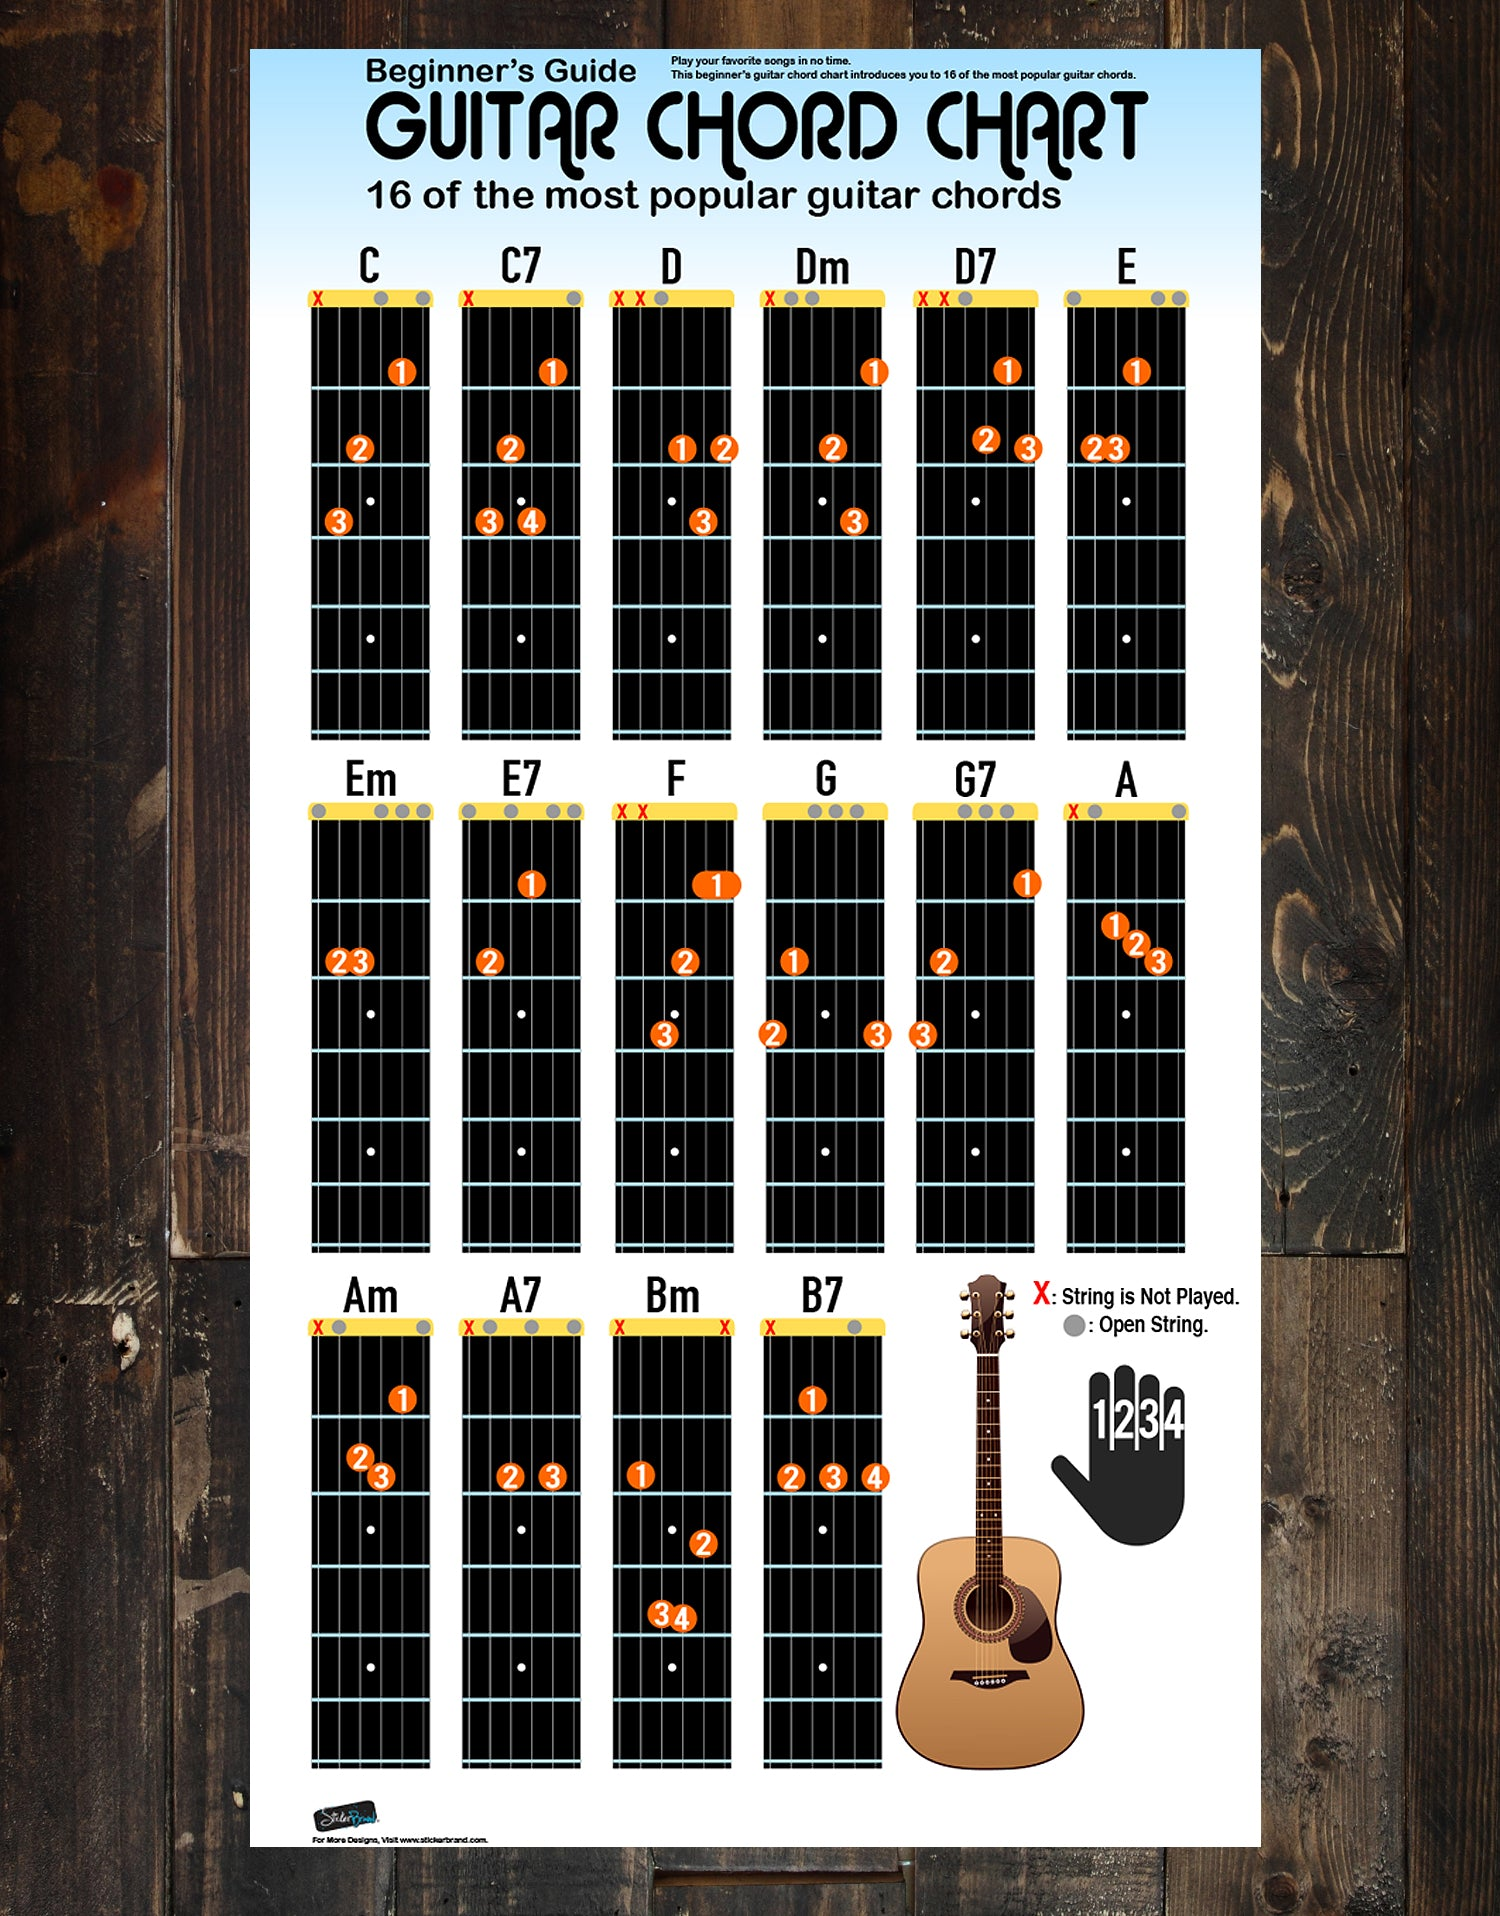 Guitar Chord Chart A7 Diagram Poster 16 Popular Chords Guide Perfect For Studen